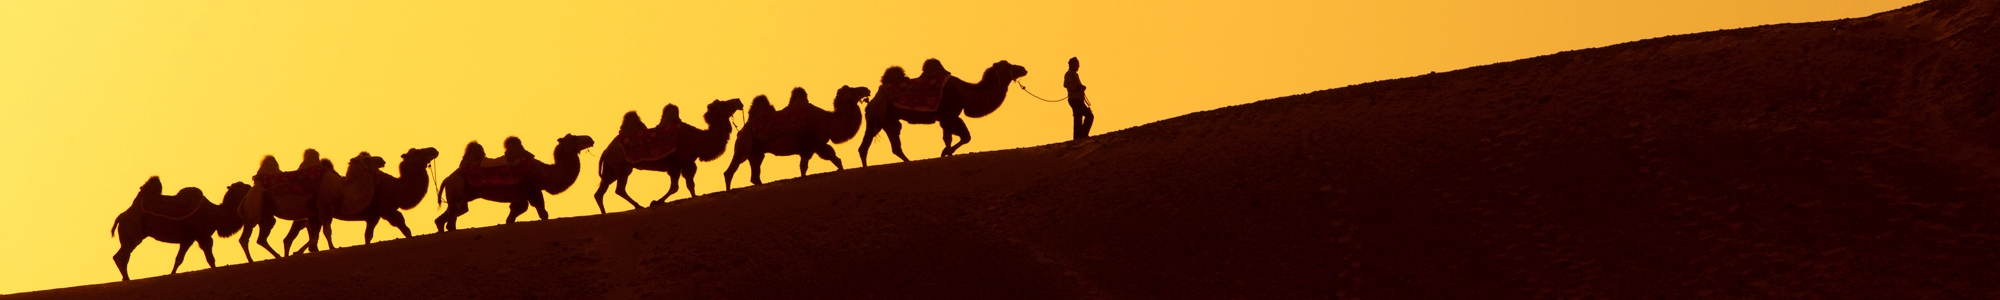 Silk-Road-Camel-China2000x300